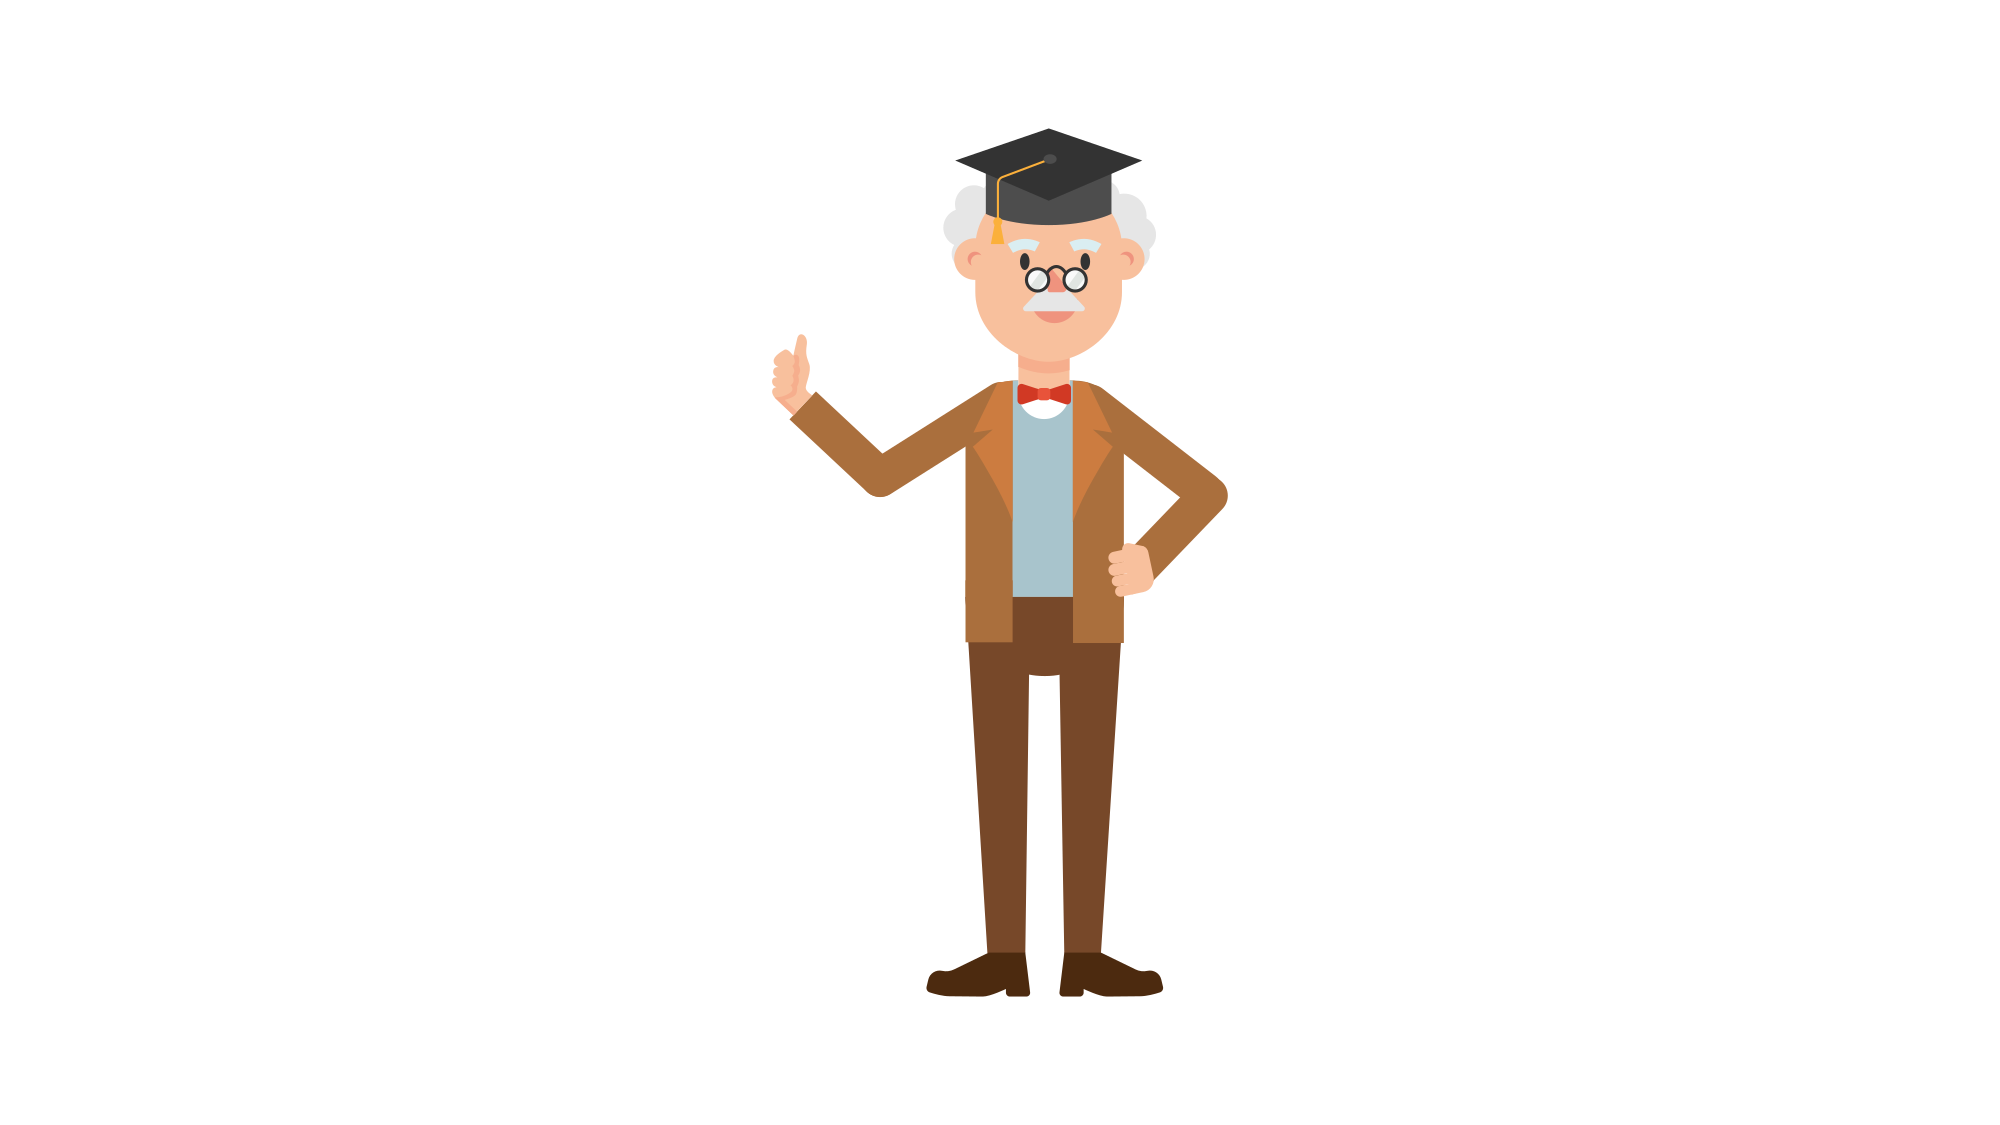 Dress svg cartoon. File professor wearing a